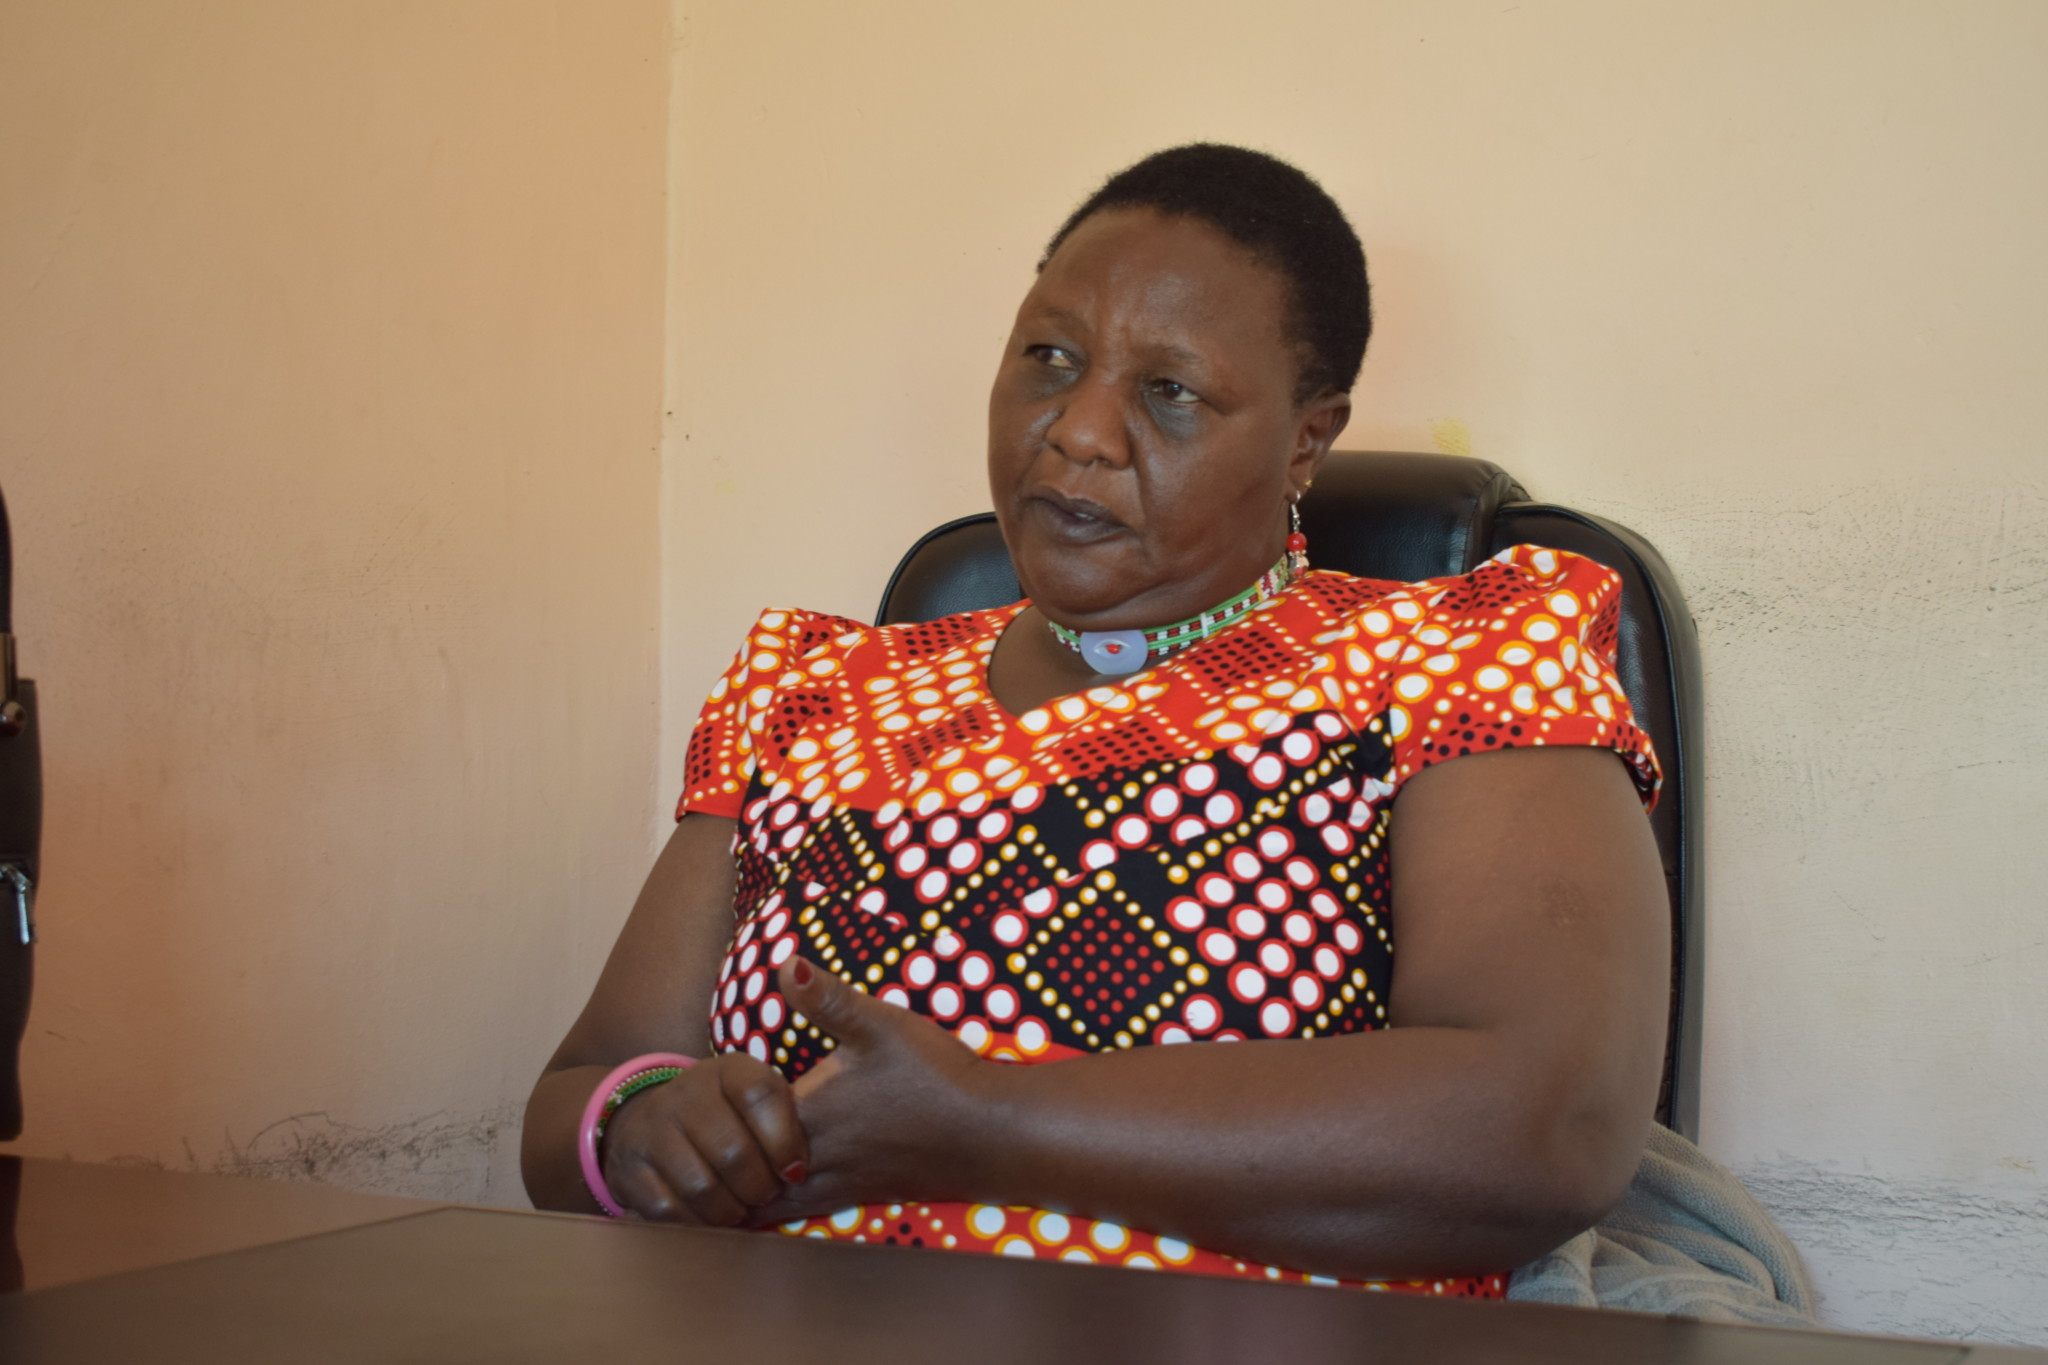 Ms Pareiyo, the Director and founder of the Tasaru Ntomonok initiative that rescues young girls from FGM and early marriages